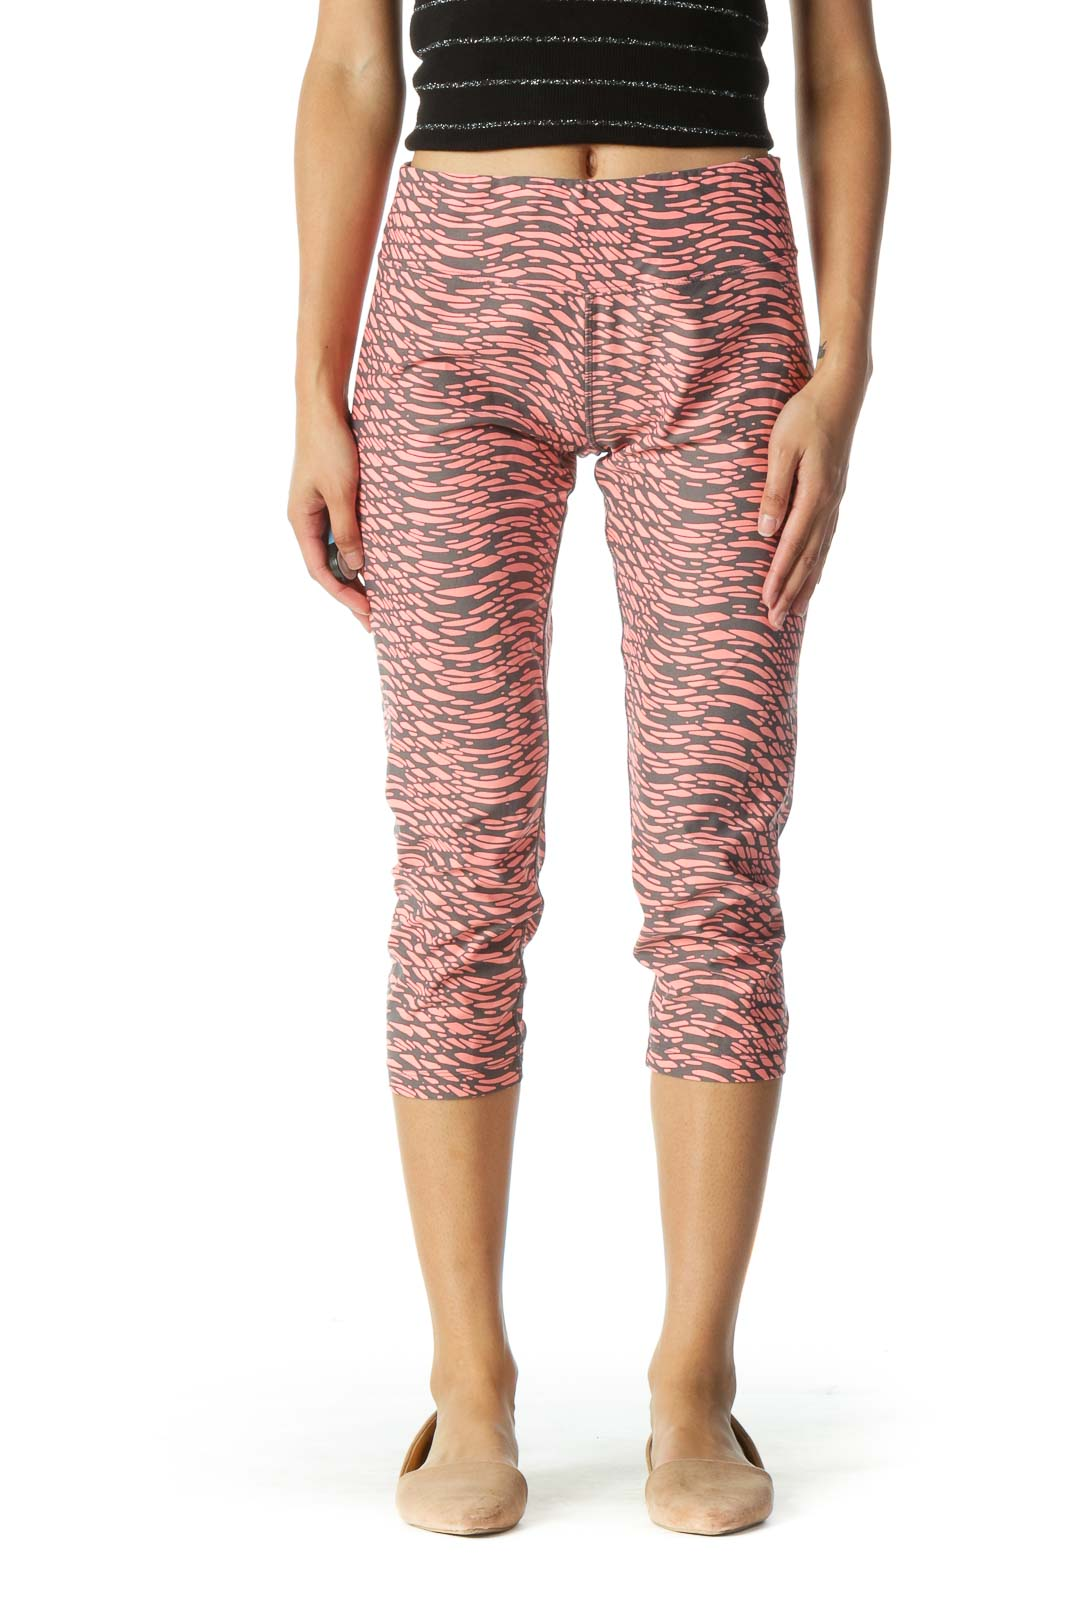 Gray and Pink Print Cropped Leggings Front